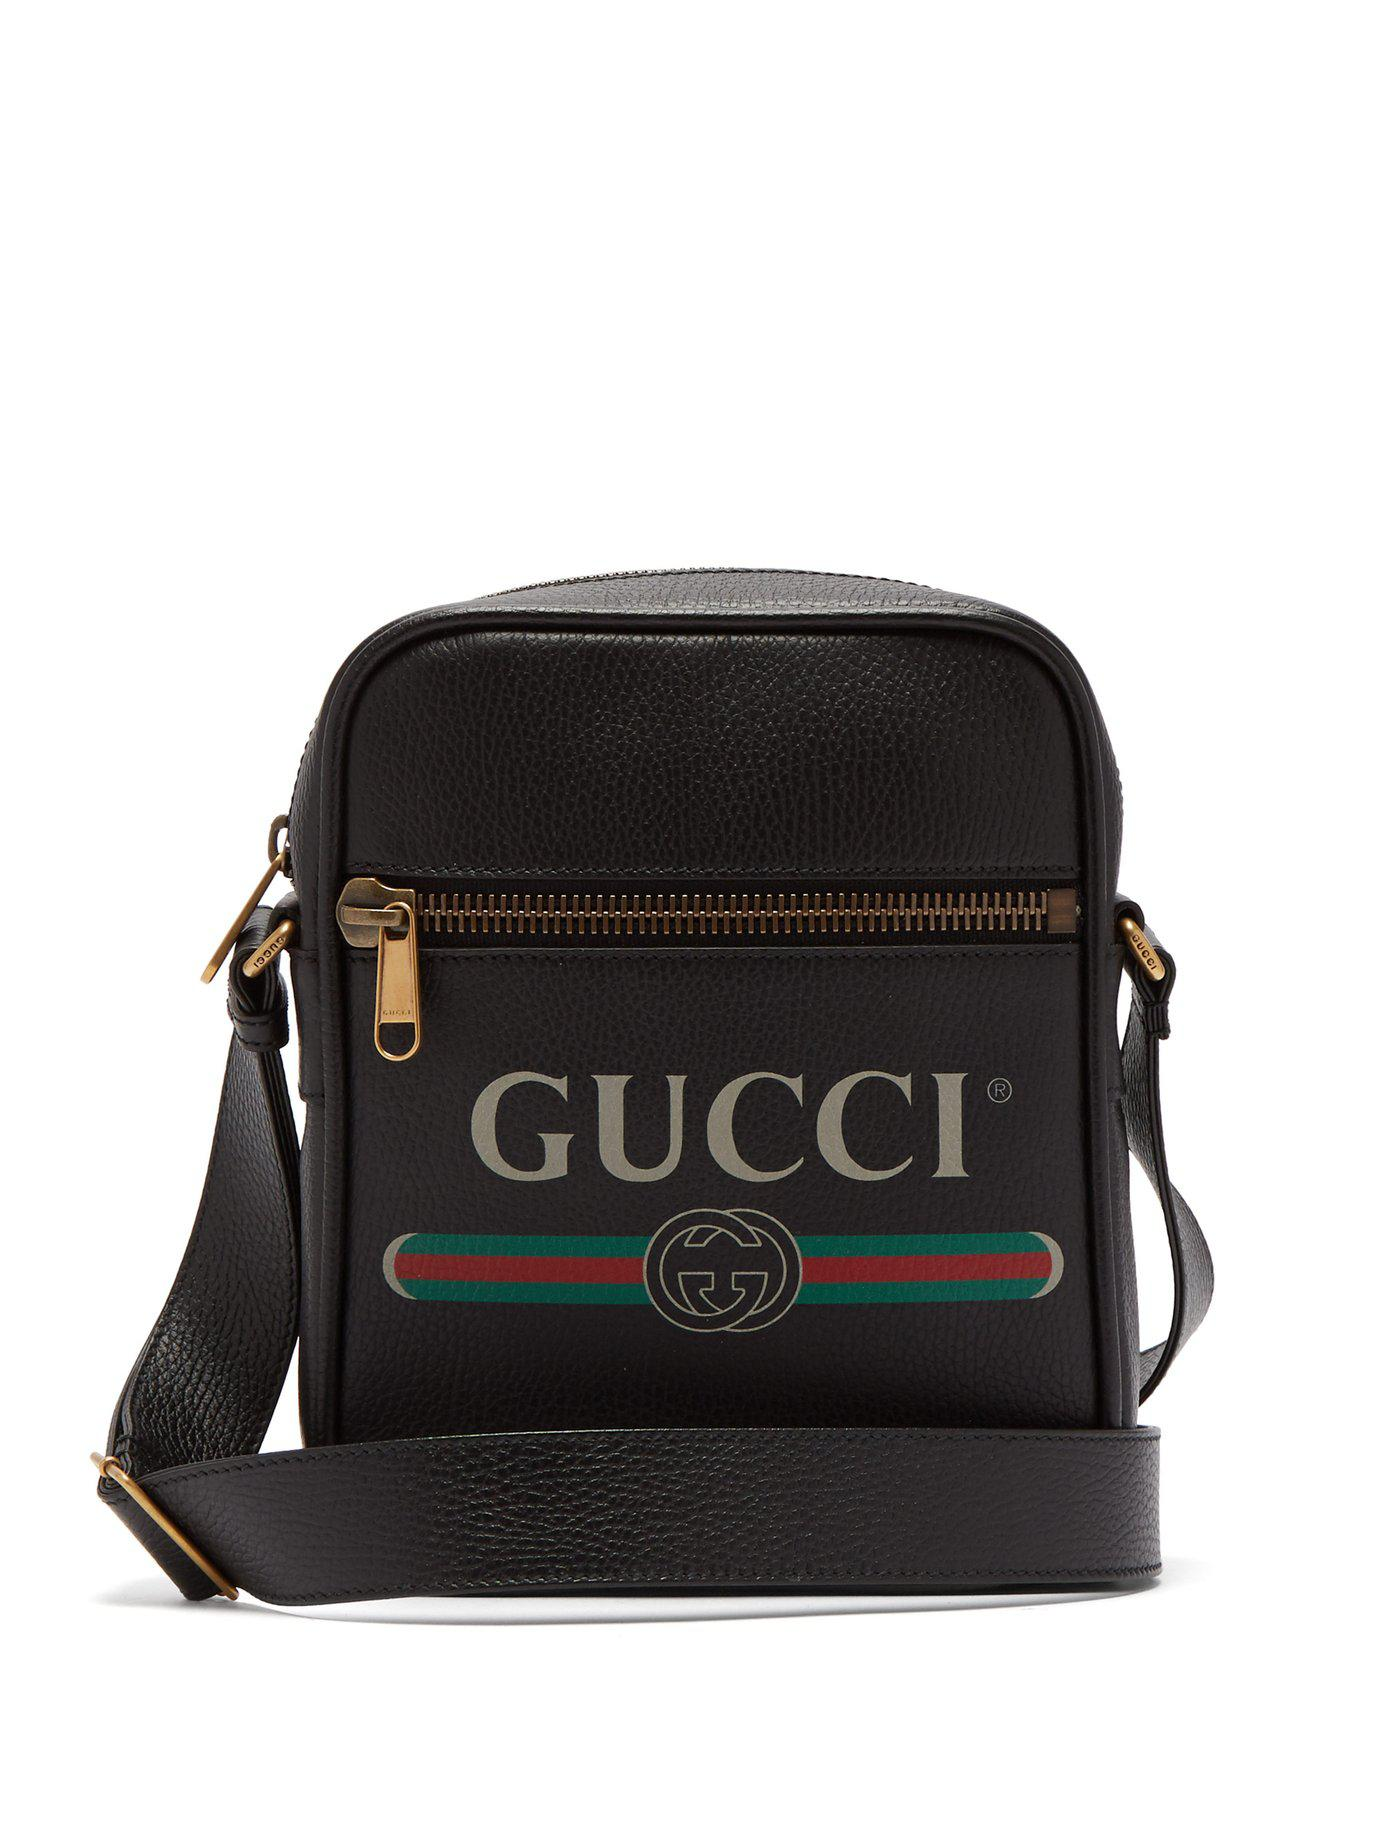 41e49ae0a89 Gucci - Black Logo Print Grained Leather Camera Bag for Men - Lyst. View  fullscreen